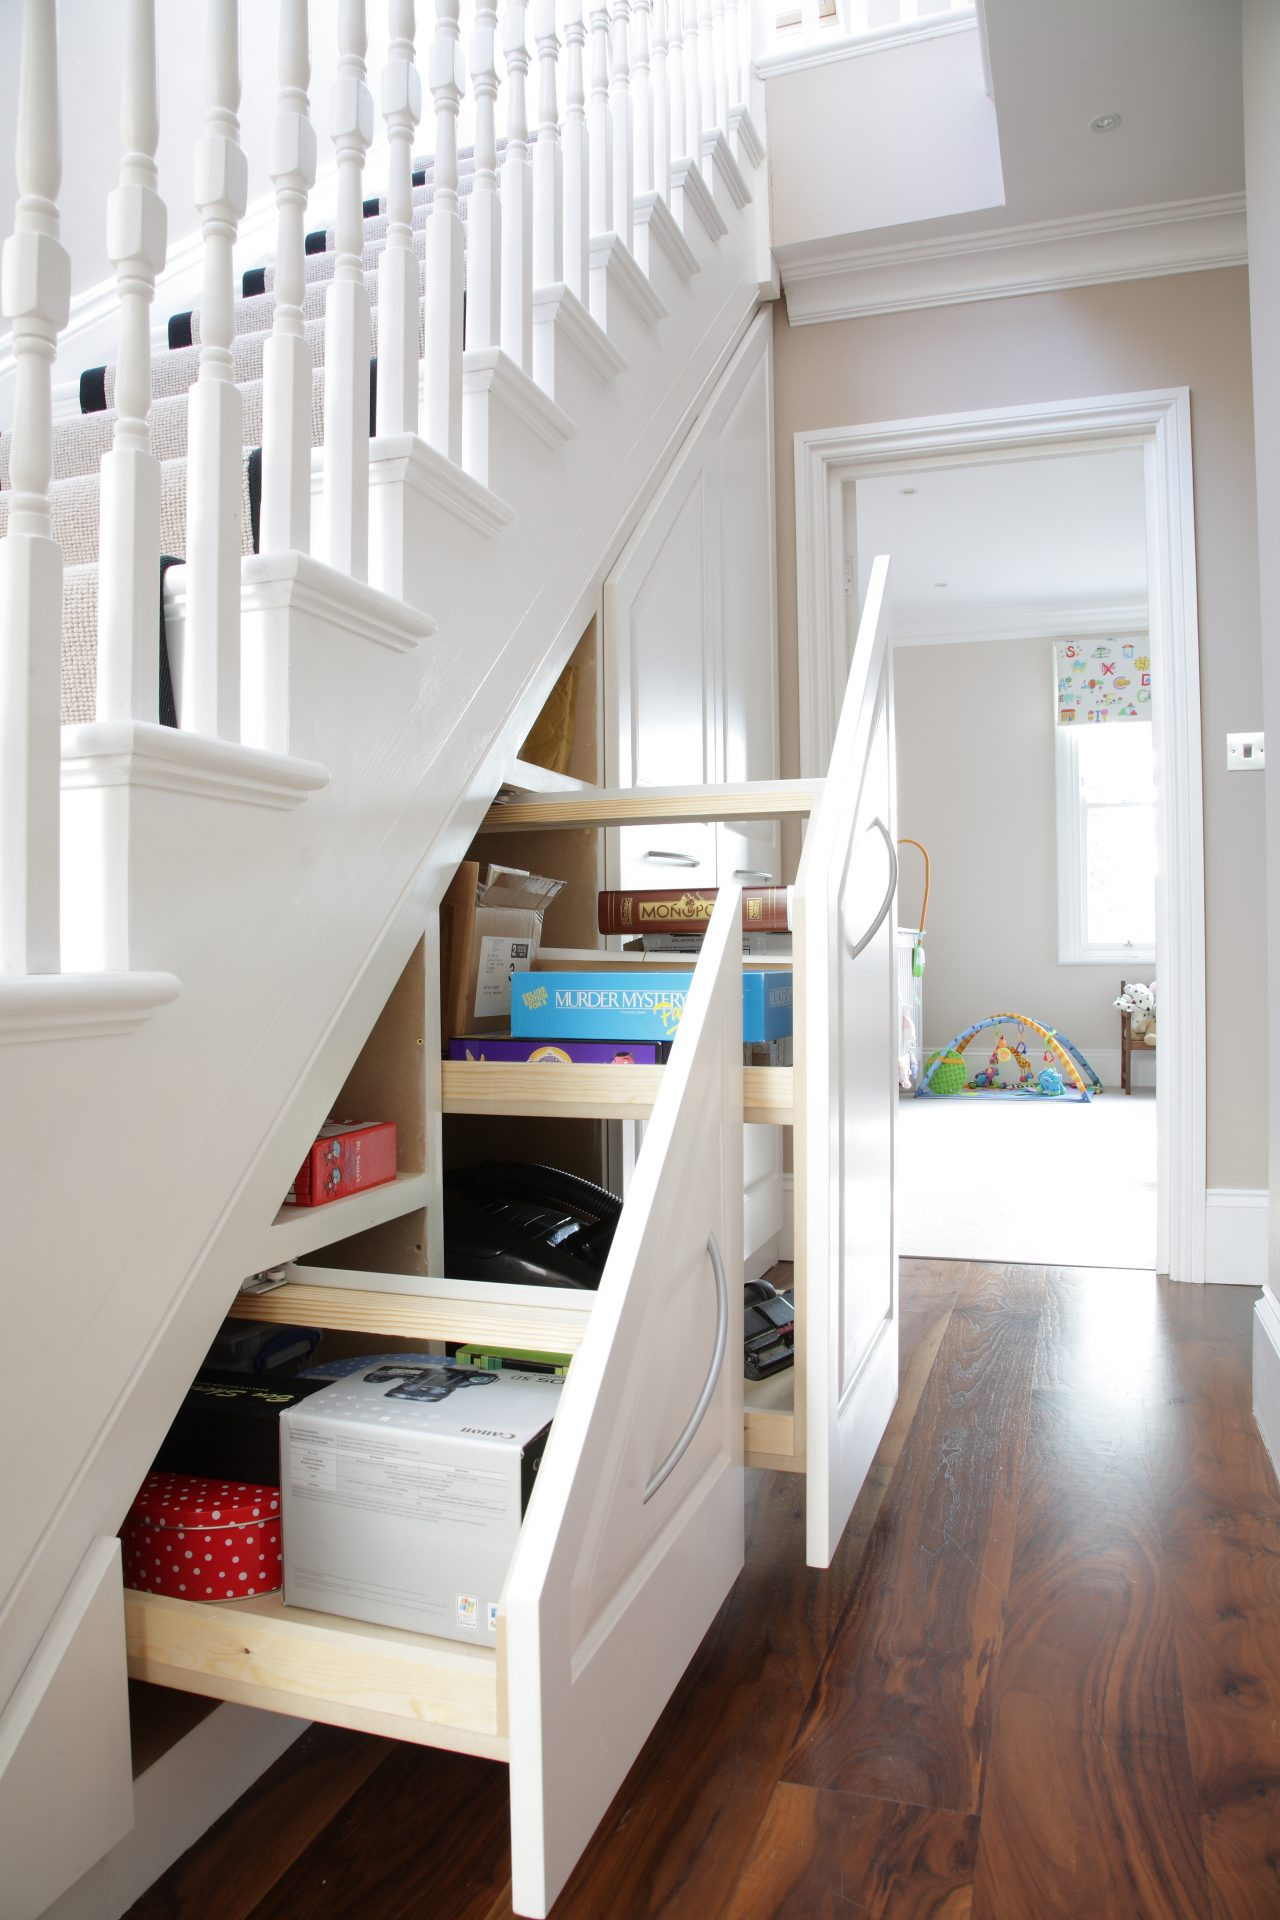 Best ideas about Under The Stairs Storage . Save or Pin Traditional under stairs storage unit JOAT London Now.